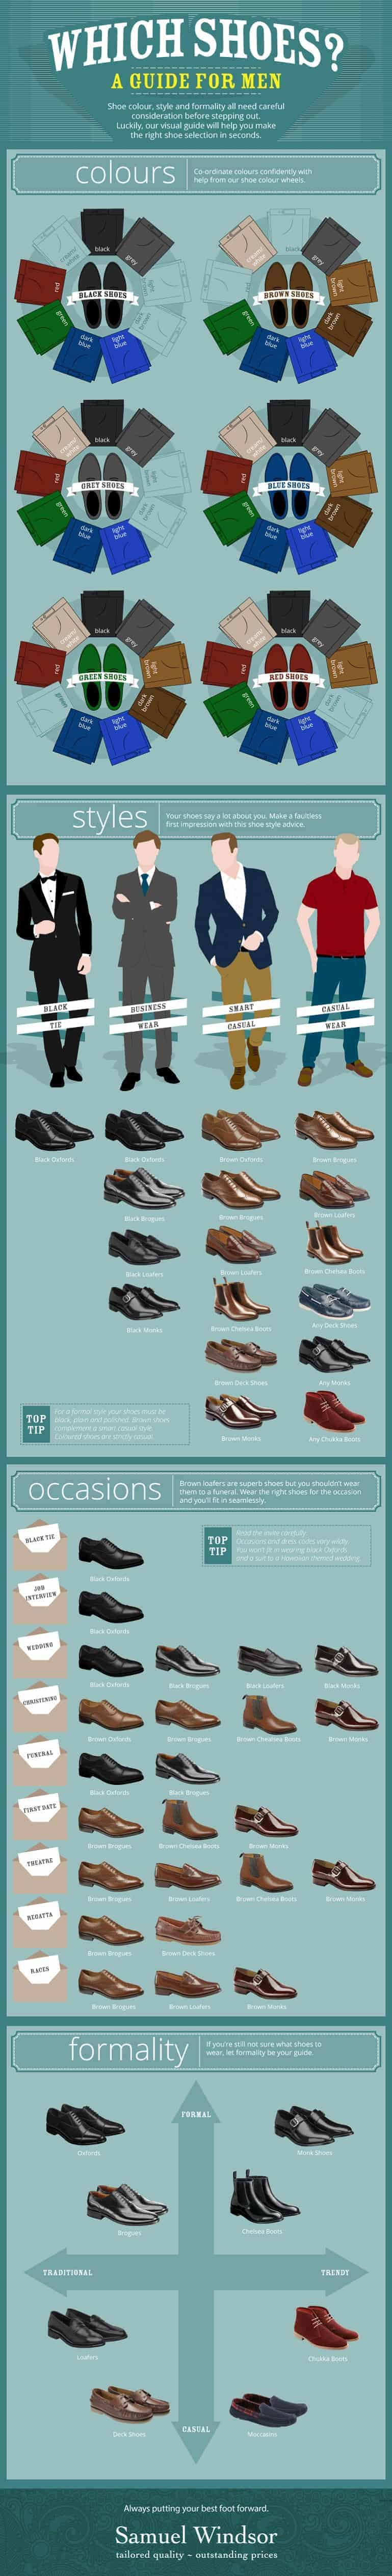 shoes guide for entrepreneurs